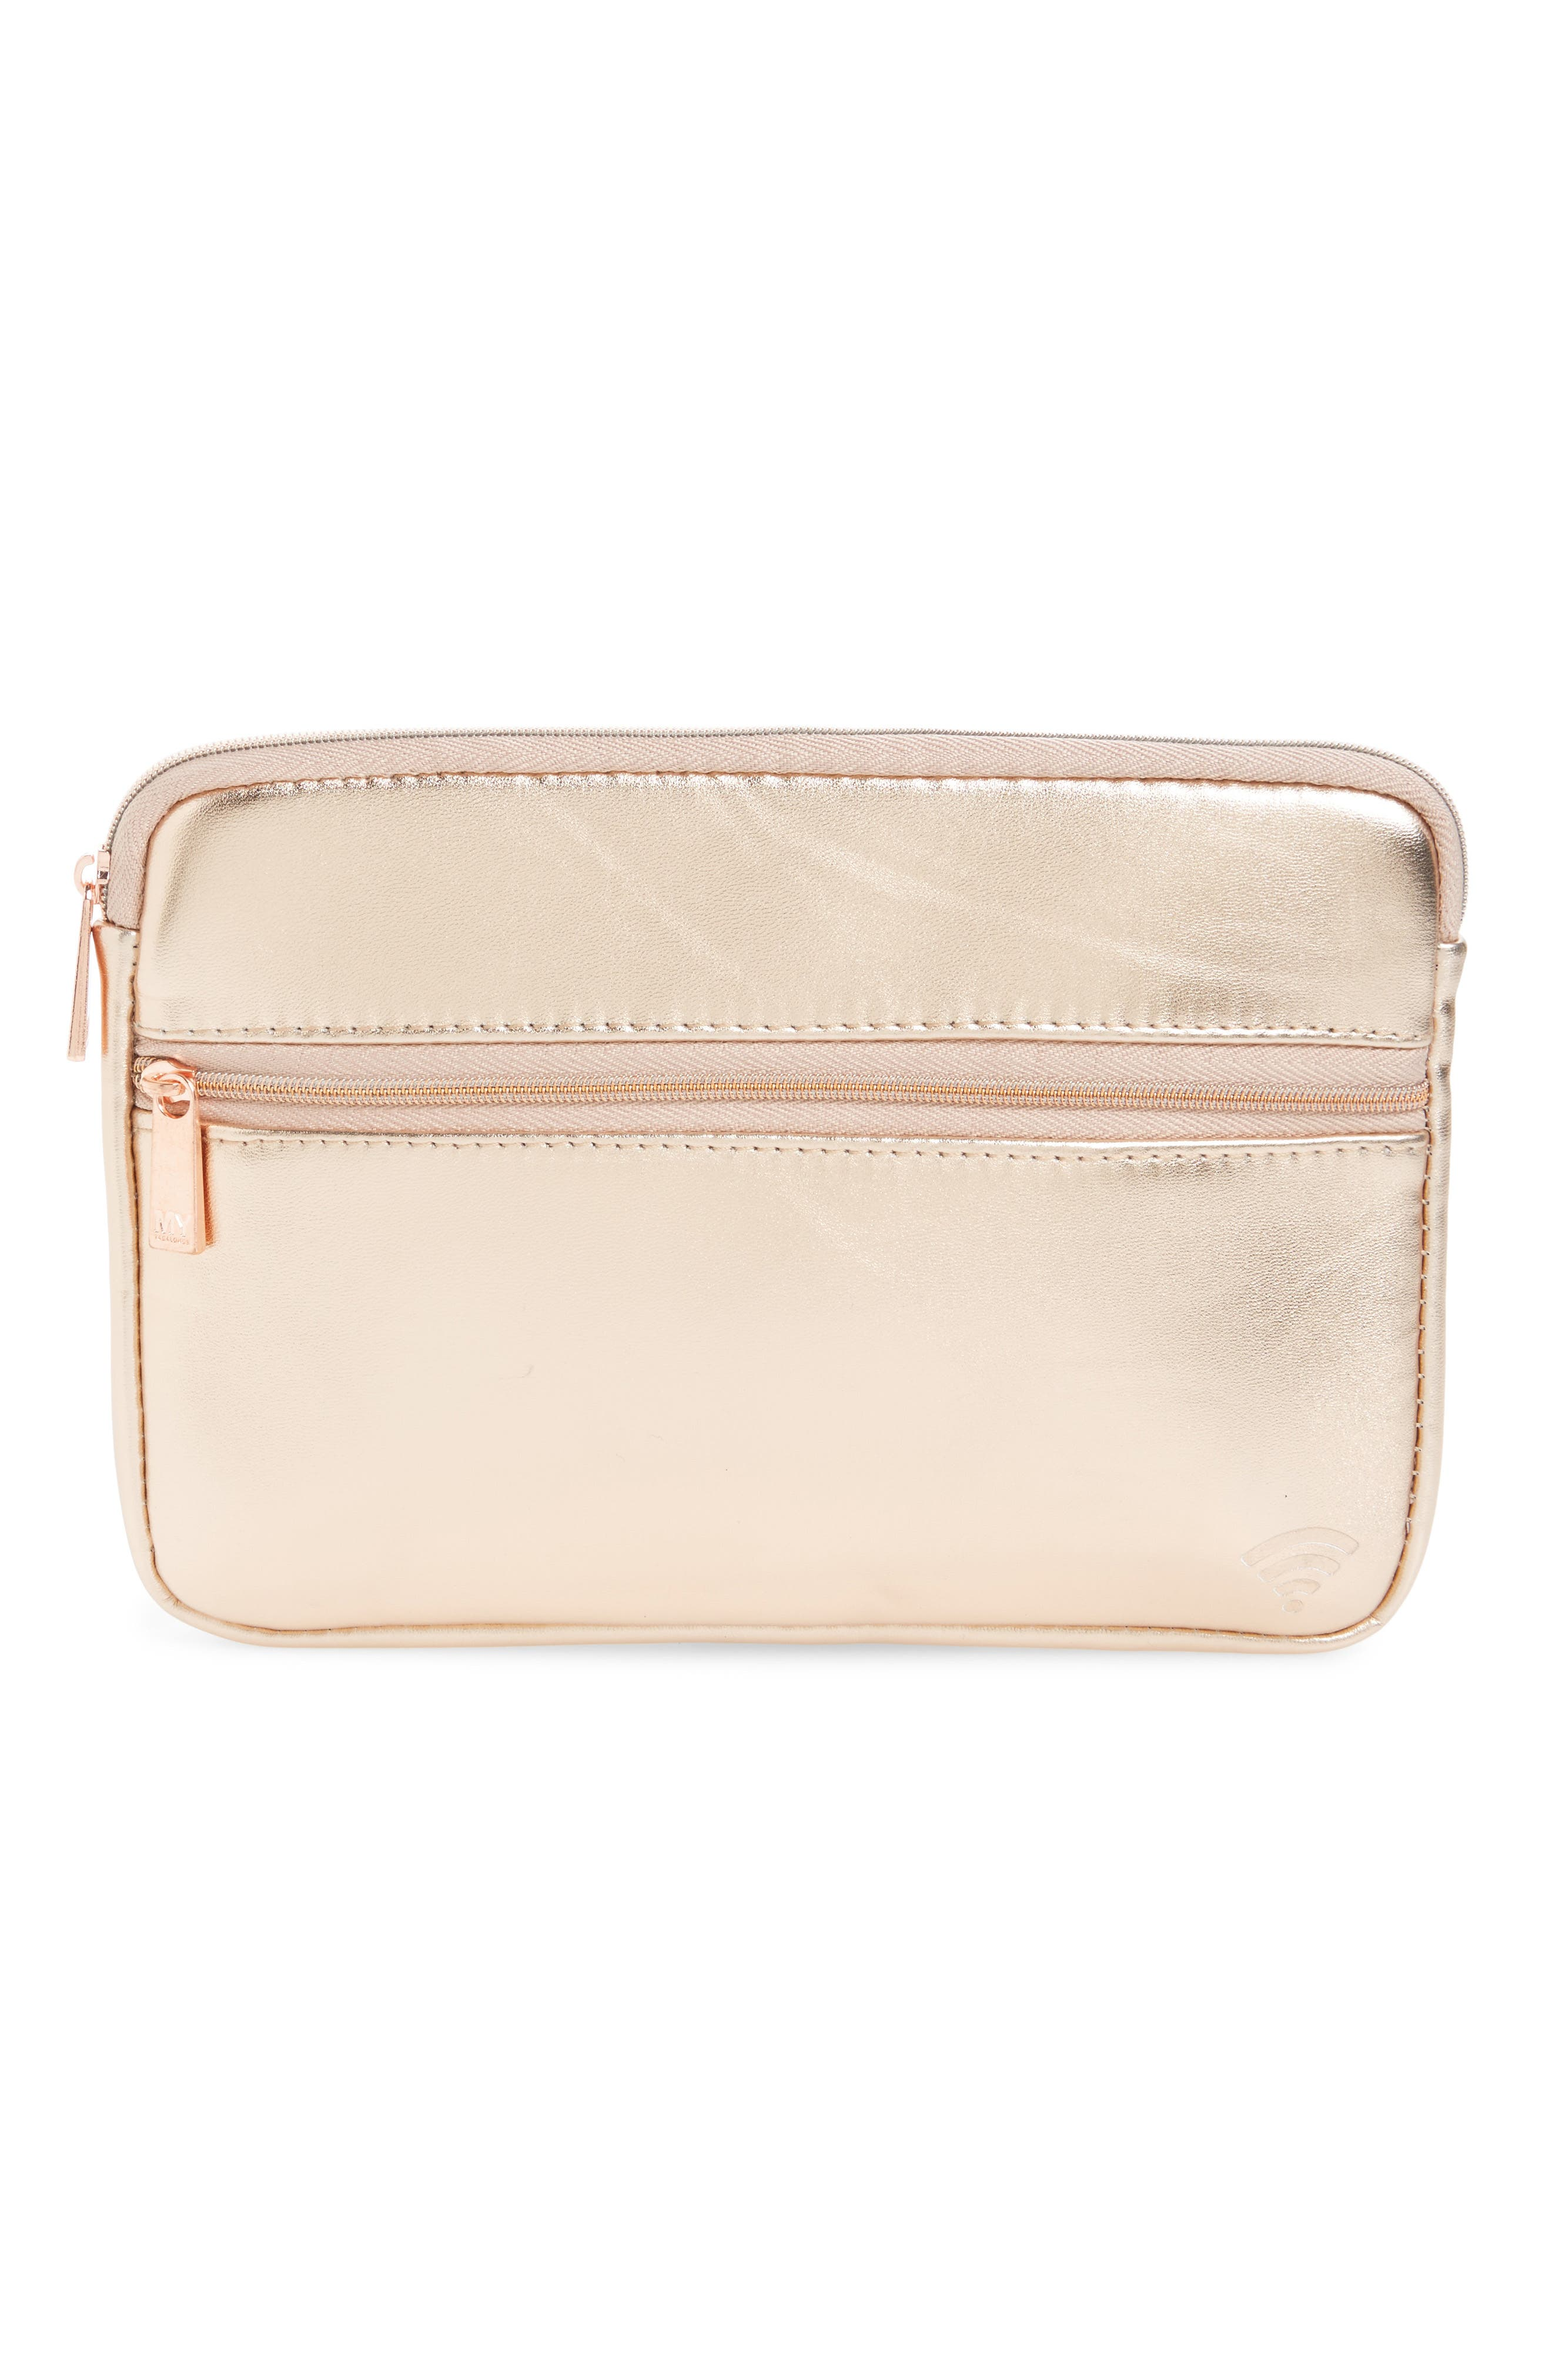 Goddess Small Tech Organizing Case,                         Main,                         color, Rose Gold